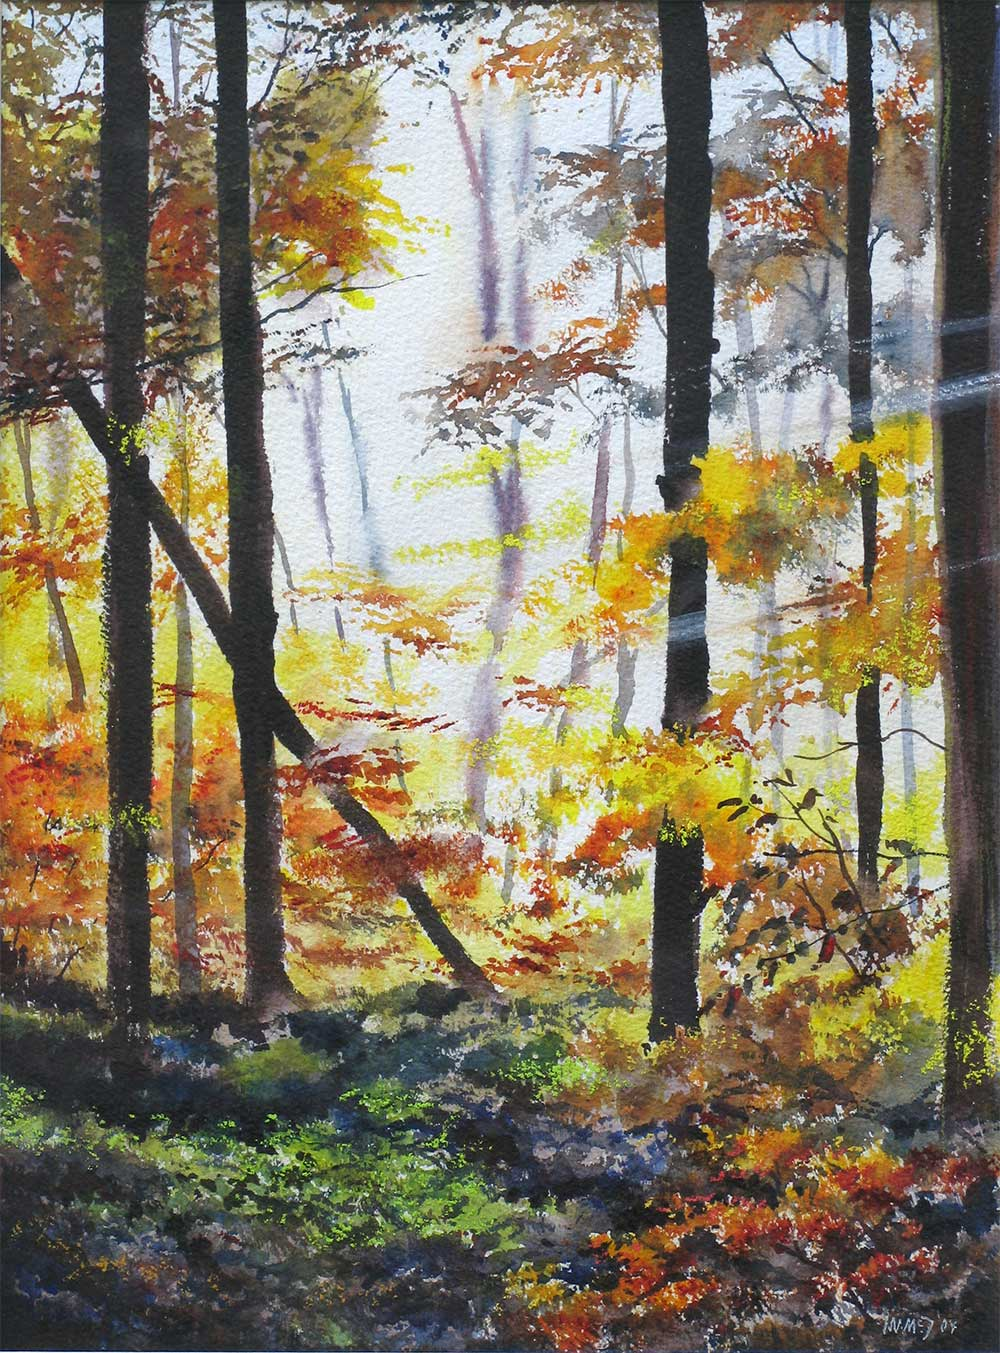 Autumn Light - Haldon Forest